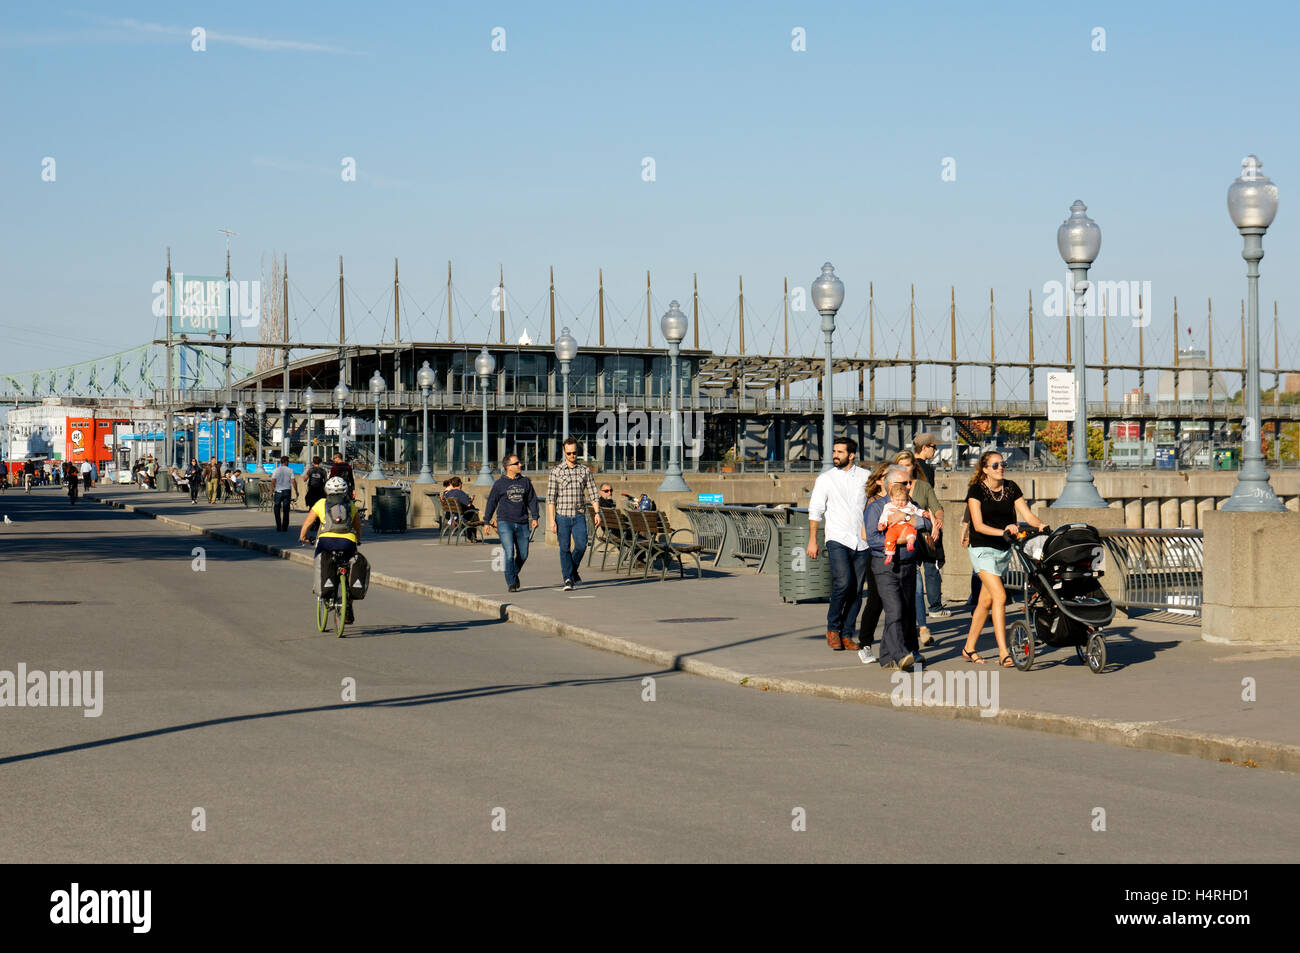 People on the Promenade des Artistes with Jacques Cartier Pavilion in back, Old Port of Montreal, Quebec, Canada - Stock Image